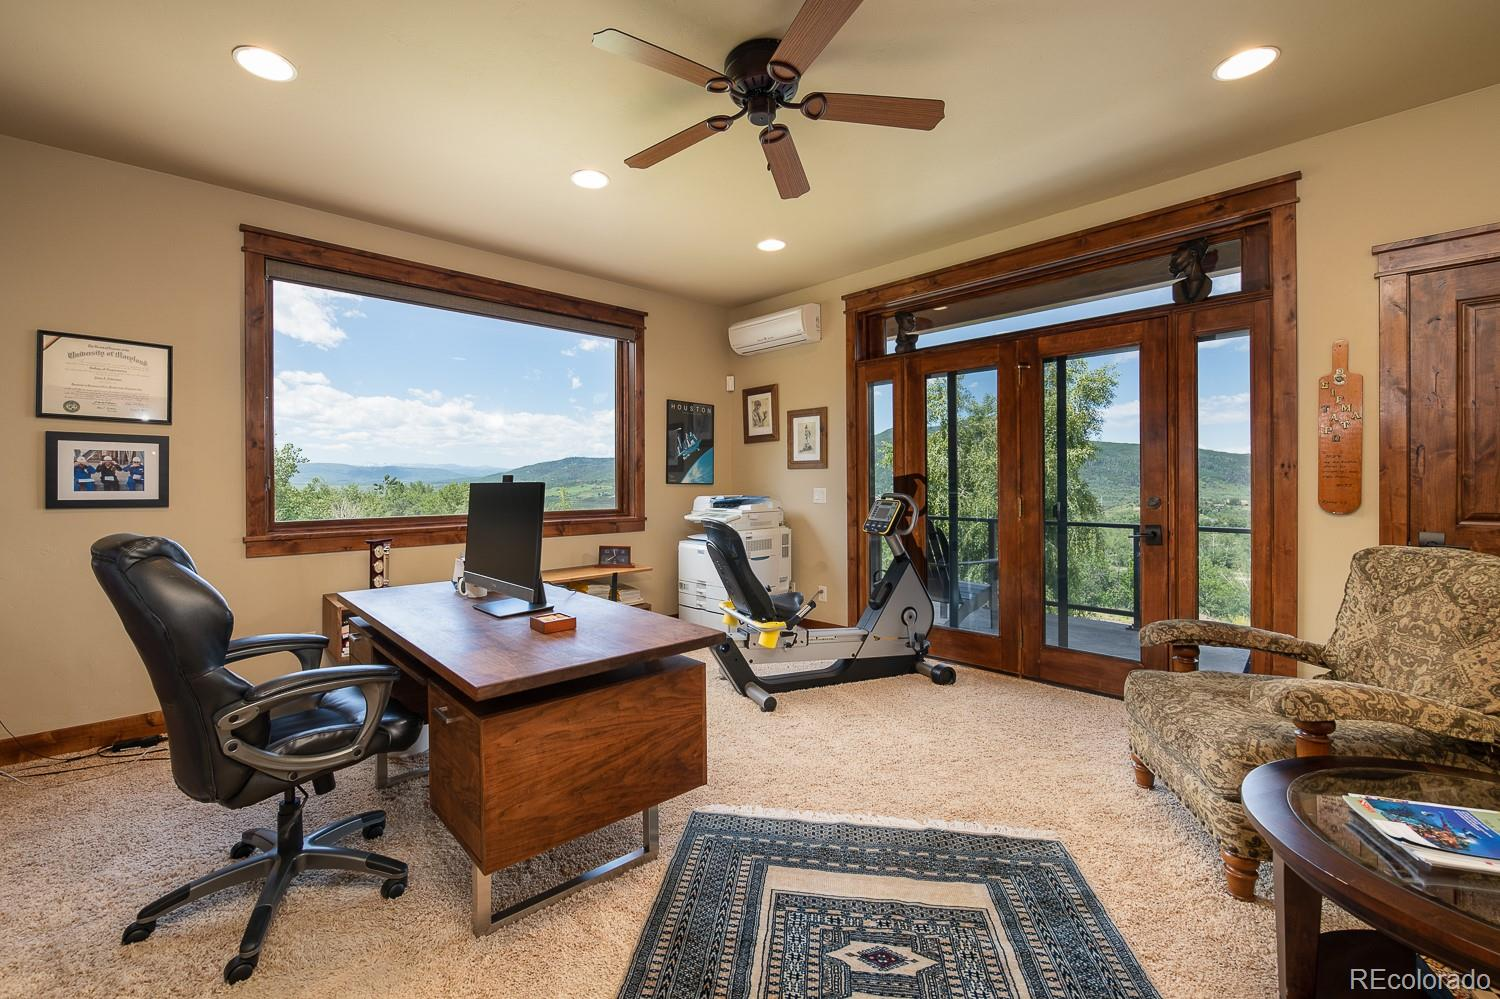 MLS# 4540014 - 22 - 1940 Clubhouse Drive, Steamboat Springs, CO 80487